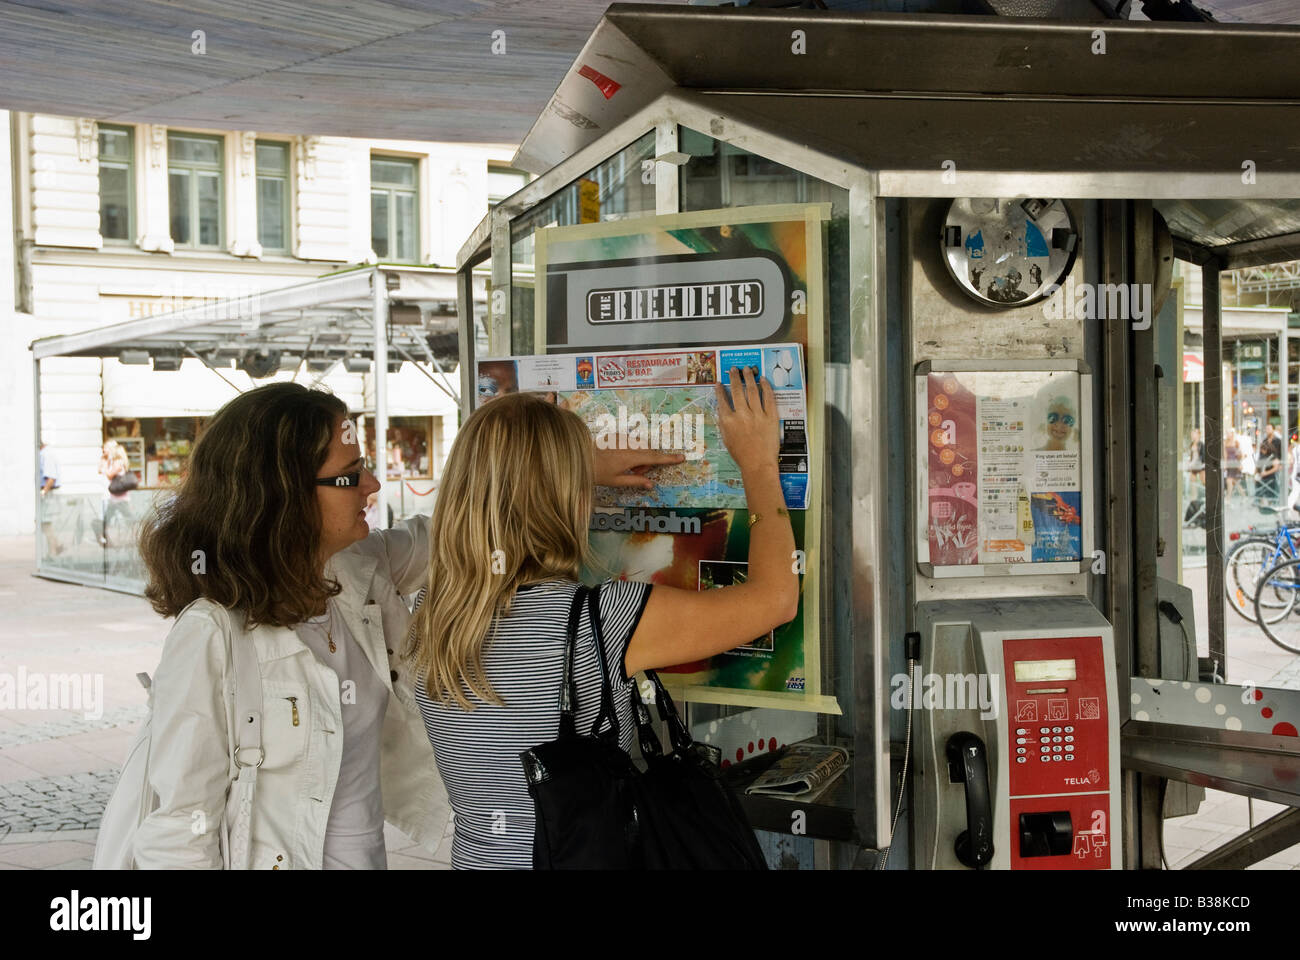 Two female tourist in downtown at Stureplan consults a map over central Stockholm Sweden Stock Photo